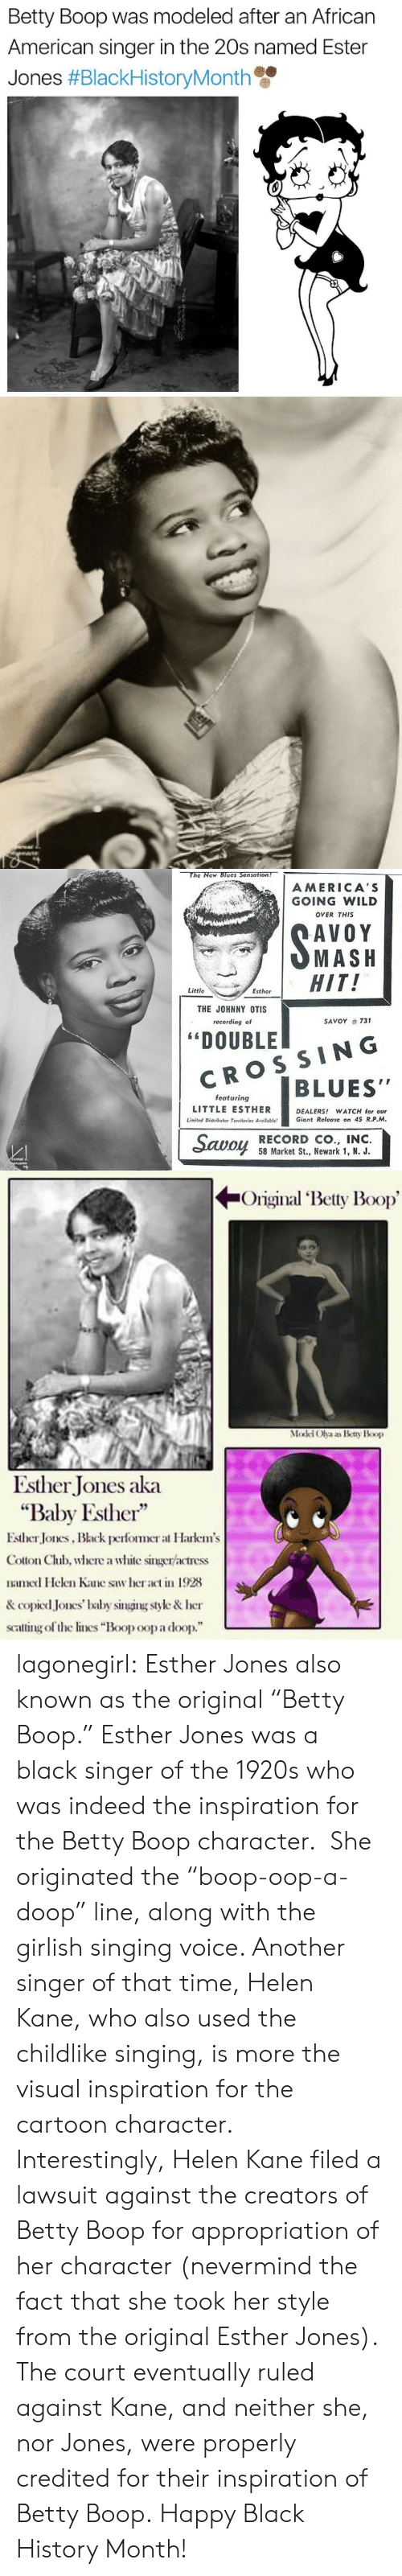 """Black History Month, Saw, and Singing: Betty Boop was modeled after an African  American singer in the 20s named Ester  Jones #BlackHistoryMonth   The New Blues Sensation!  AMERICA'S  GOING WILD  OVER THIS  AVOY  SMASH  HIT!  Little  Esther  THE JOHNNY OTIS  SAVOY 731  recording of  """"DOUBLE  CROSSING  BLUES""""  featuring  LITTLE ESTHER  DEALERS! WATCH for our  Giant Release on 45 R.P.M.  Limited Distributor Territories Avoiloble!  Savoy  RECORD CO., INC.  58 Market St., Newark 1, N. J.  domal  dmann   Original Betty Boop  Model Olya as Betty Boop  Esther Jones aka  """"Baby Esther""""  Esther Jones, Black pefomer at Harkem's  Cotton Chlub, where a white singer/actress  named Helen Kane saw her act in 1928  & copied Jones' baby singing style & her  scating of the lines """"Boop oop a doop."""" lagonegirl:  Esther Jones also known as the original """"Betty Boop.""""     Esther Jones was a black singer of the 1920s who was indeed the inspiration for the Betty Boop character. She originated the """"boop-oop-a-doop"""" line, along with the girlish singing voice. Another singer of that time, Helen Kane, who also used the childlike singing, is more the visual inspiration for the cartoon character. Interestingly, Helen Kane filed a lawsuit against the creators of Betty Boop for appropriation of her character (nevermind the fact that she took her style from the original Esther Jones). The court eventually ruled against Kane, and neither she, nor Jones, were properly credited for their inspiration of Betty Boop.   Happy Black History Month!"""